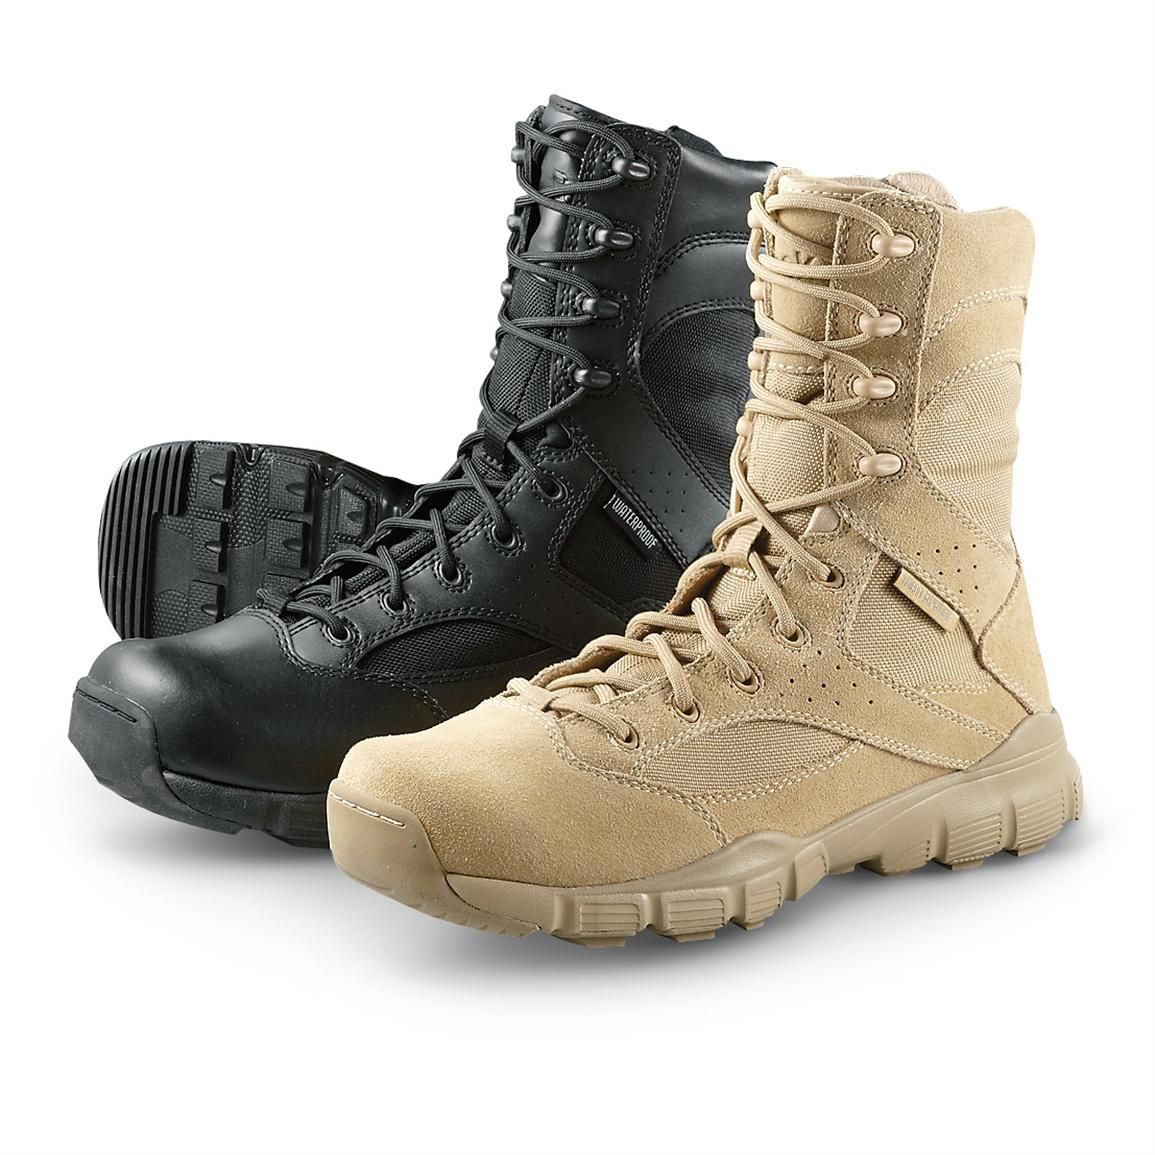 c842d668e42c07 Men's Reebok Dauntless Waterproof Duty Boots • Black or Tan | 365 ...